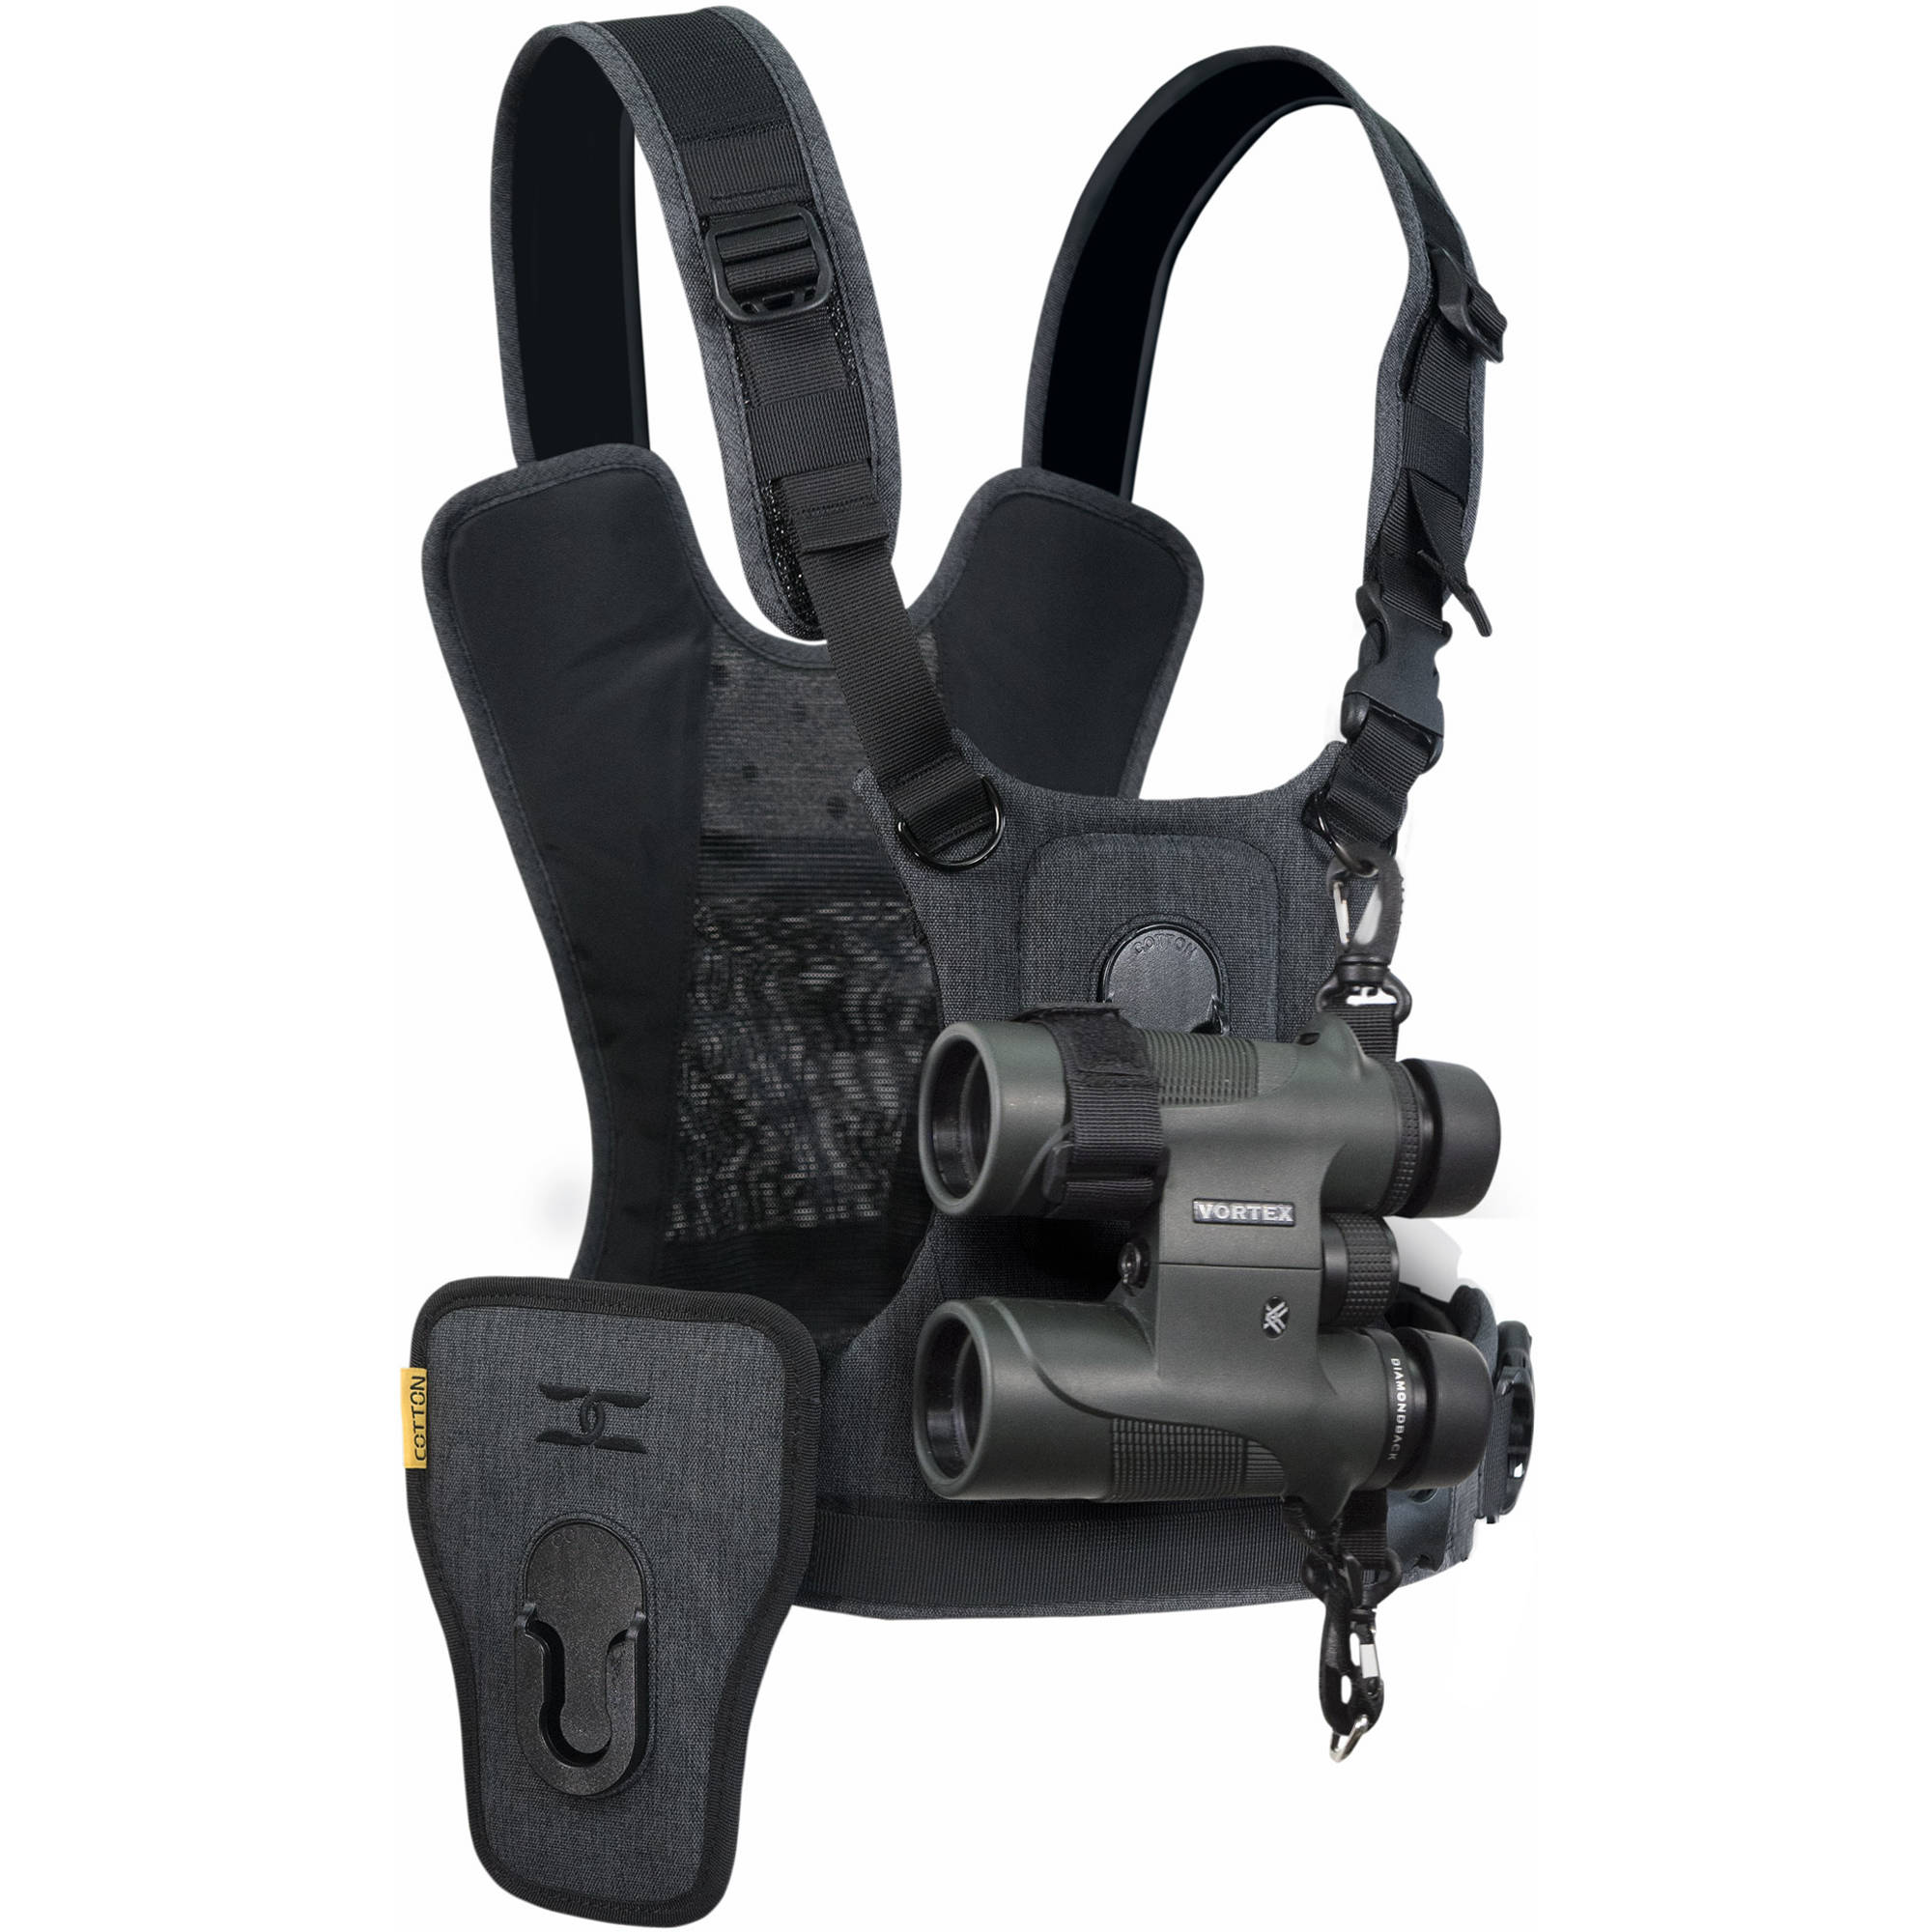 Cotton Carrier Ccs G3 Binocular And Camera Harness 944grey